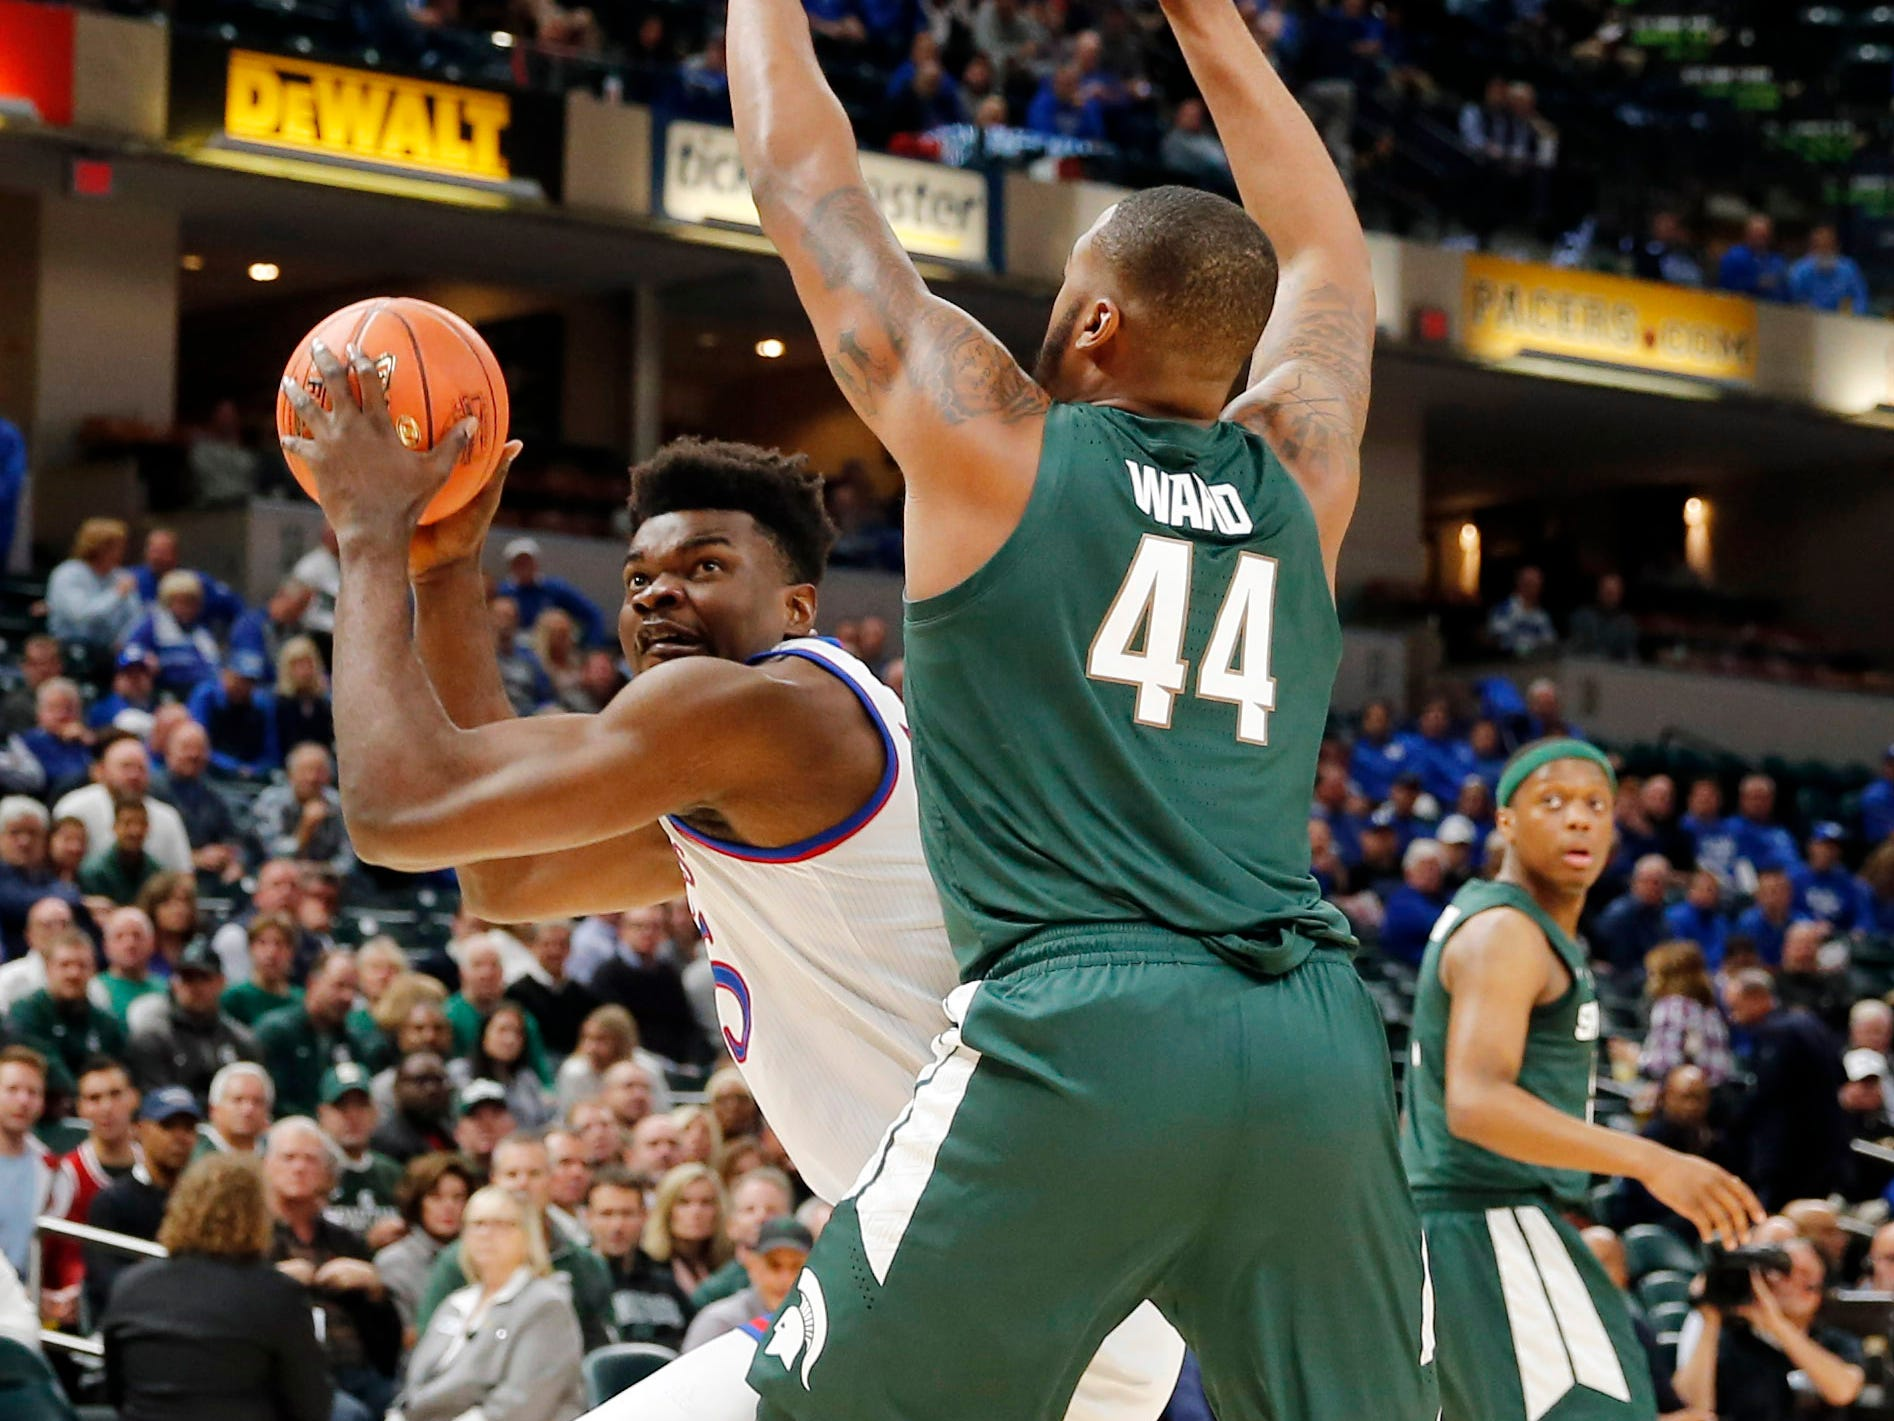 Kansas Jayhawks center Udoka Azubuike (35) takes a shot against Michigan State Spartans forward Nick Ward (44) in the first half during the Champions Classic at Bankers Life Fieldhouse.